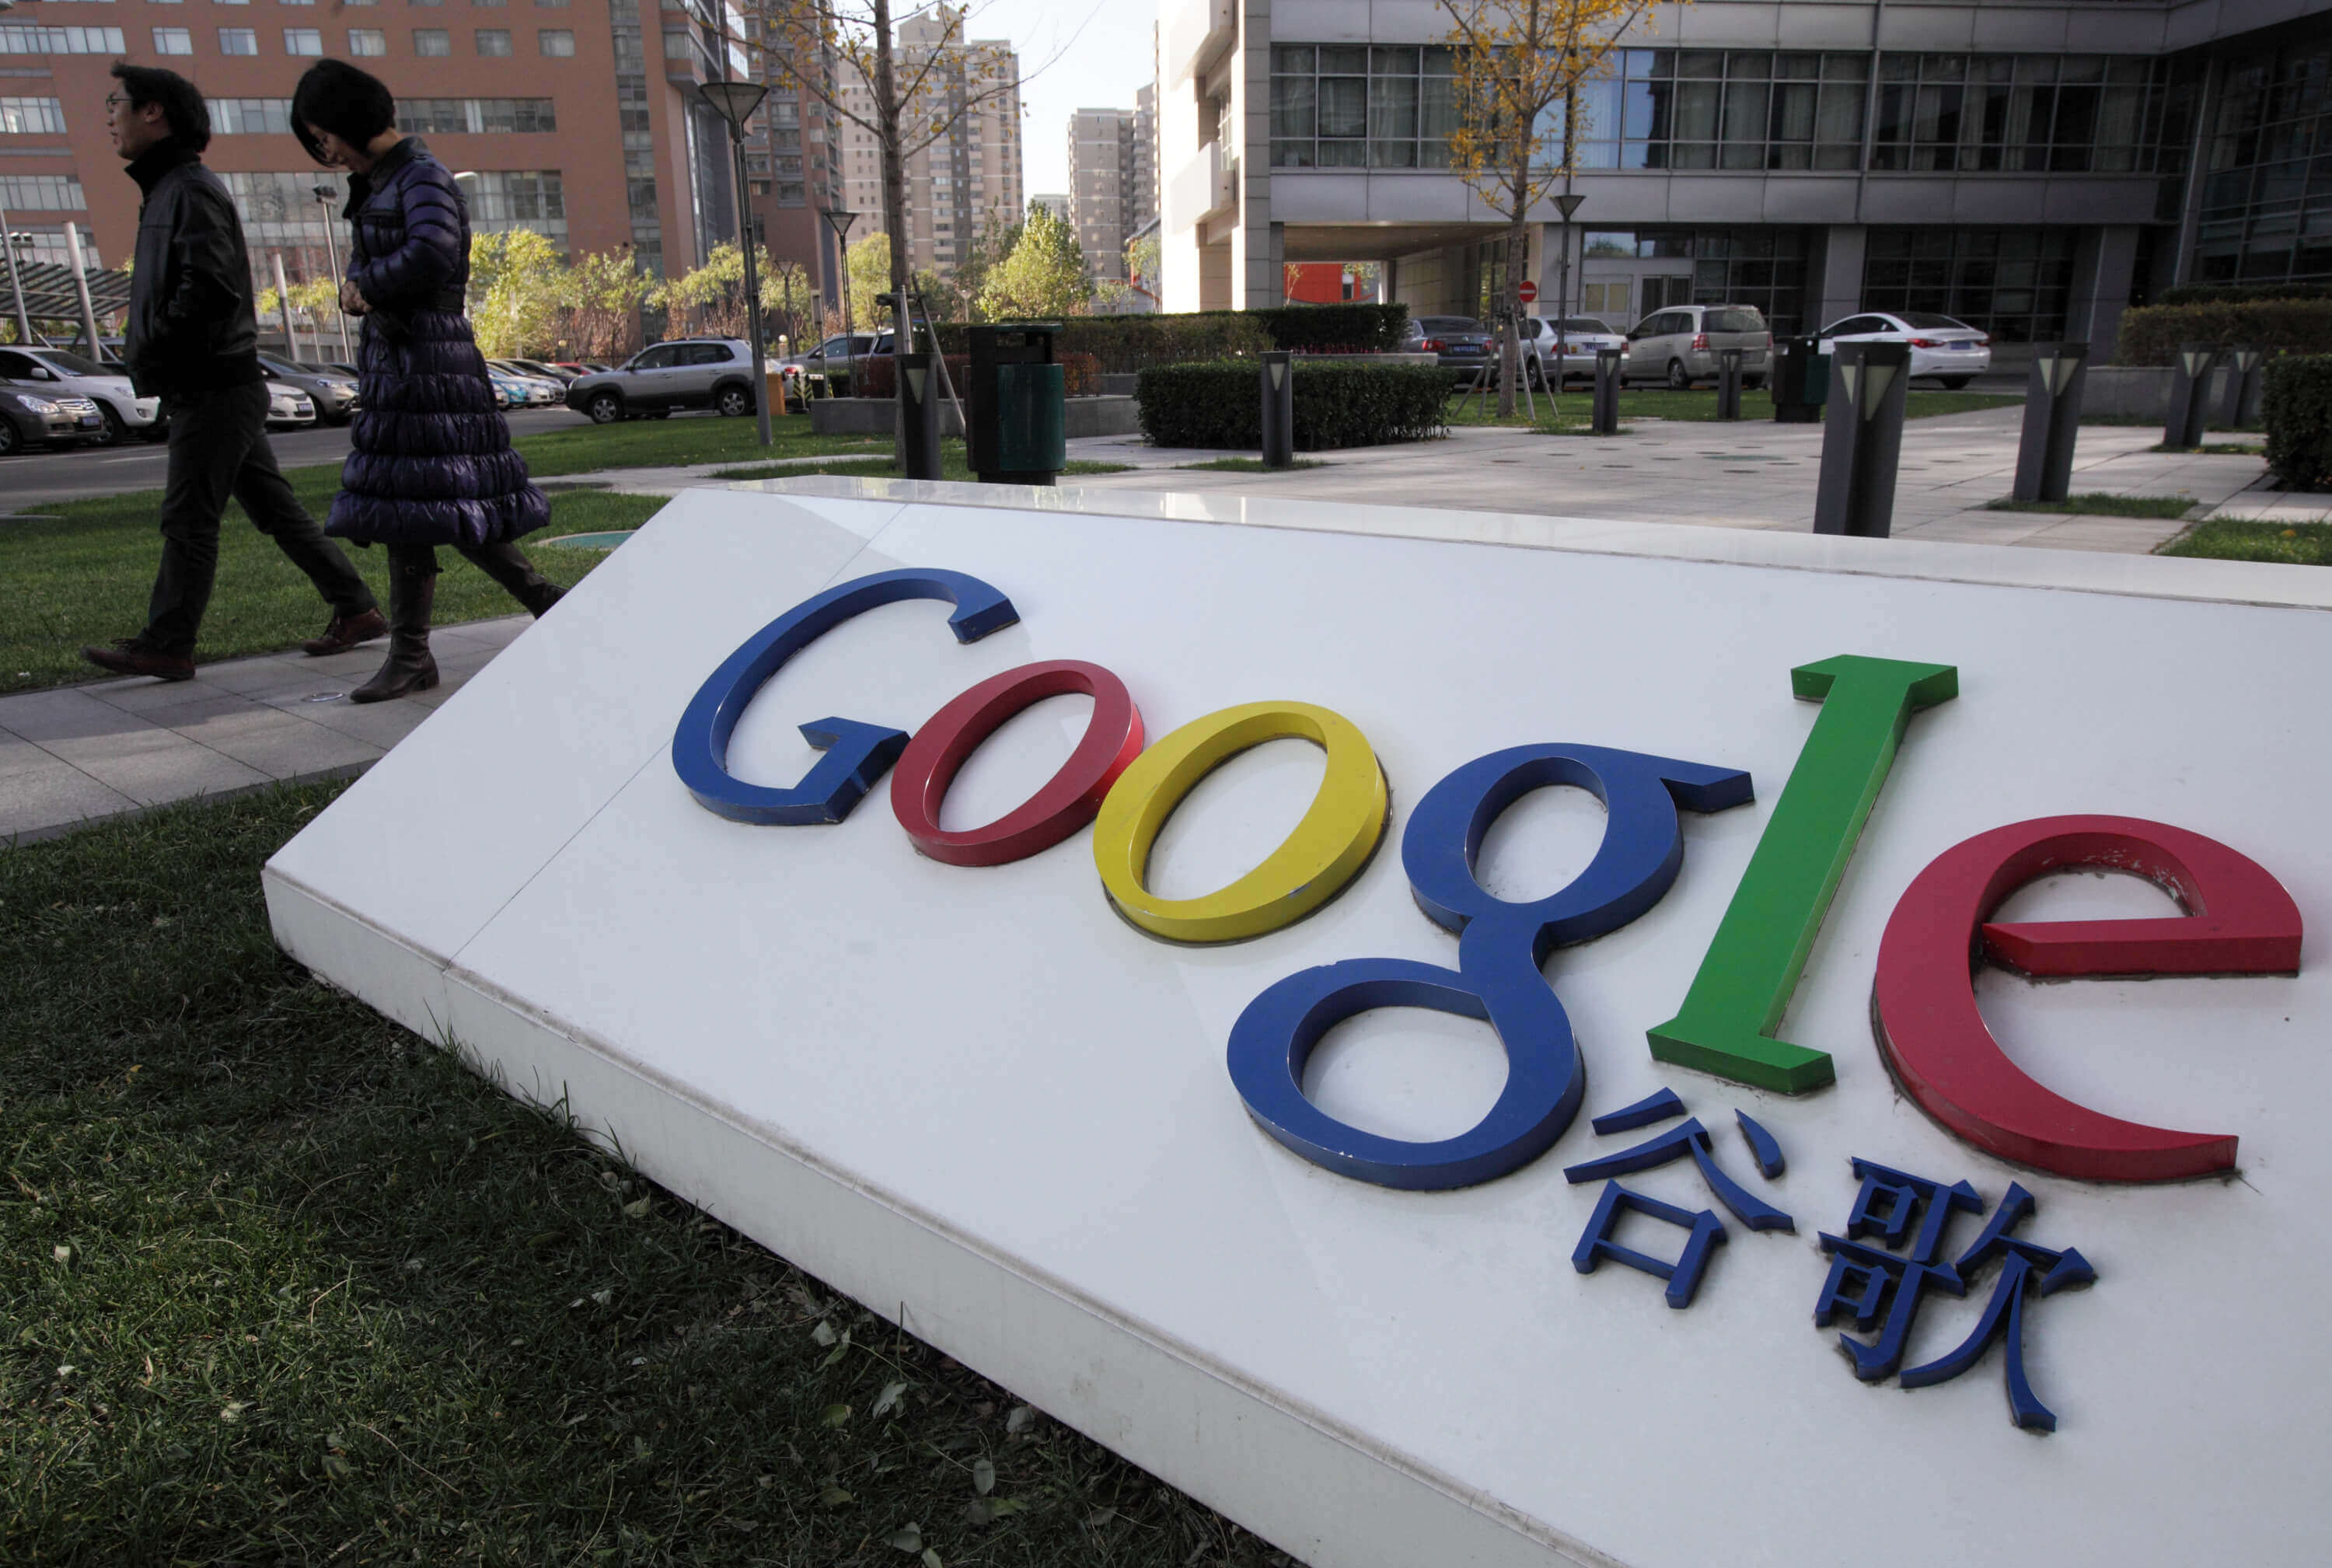 Report: Google's Plan to Launch Censored Search Engine in China Revealed